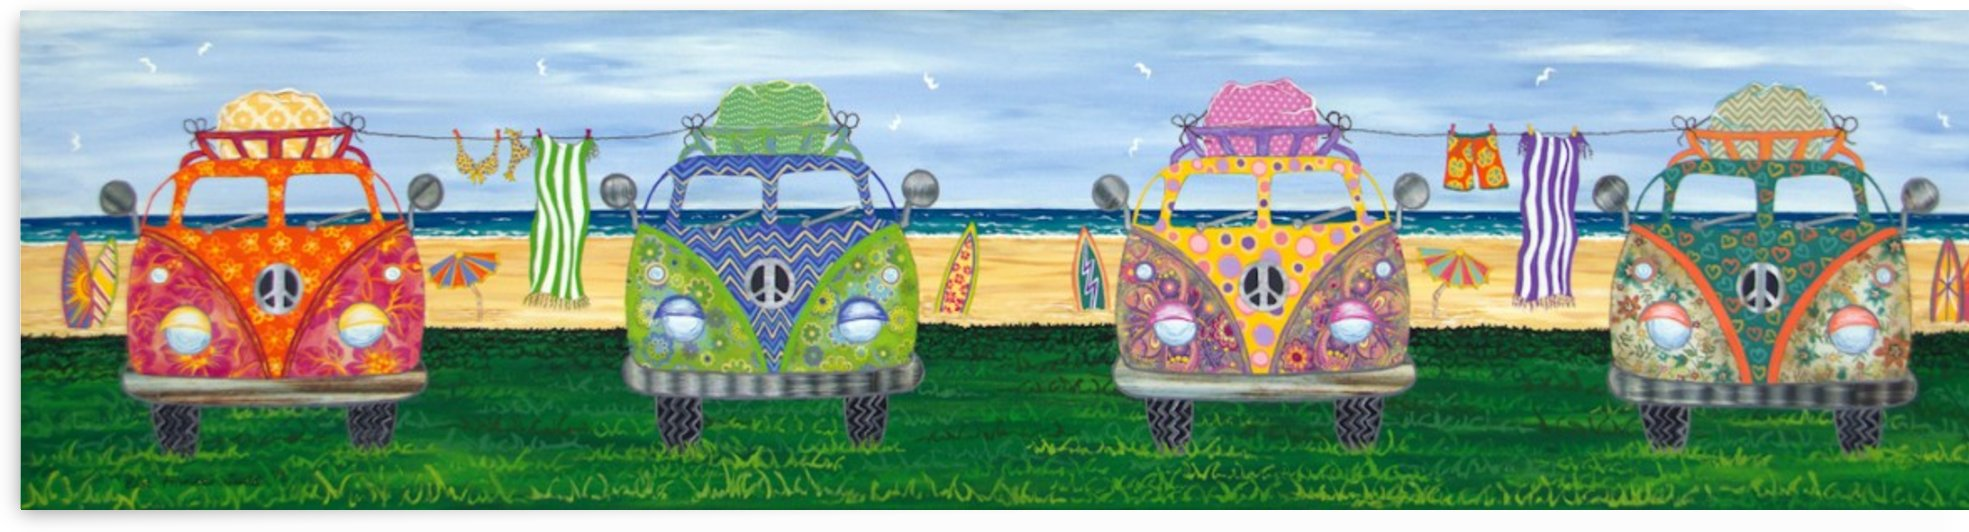 Hippy Van Holiday by Lisa Frances Judd